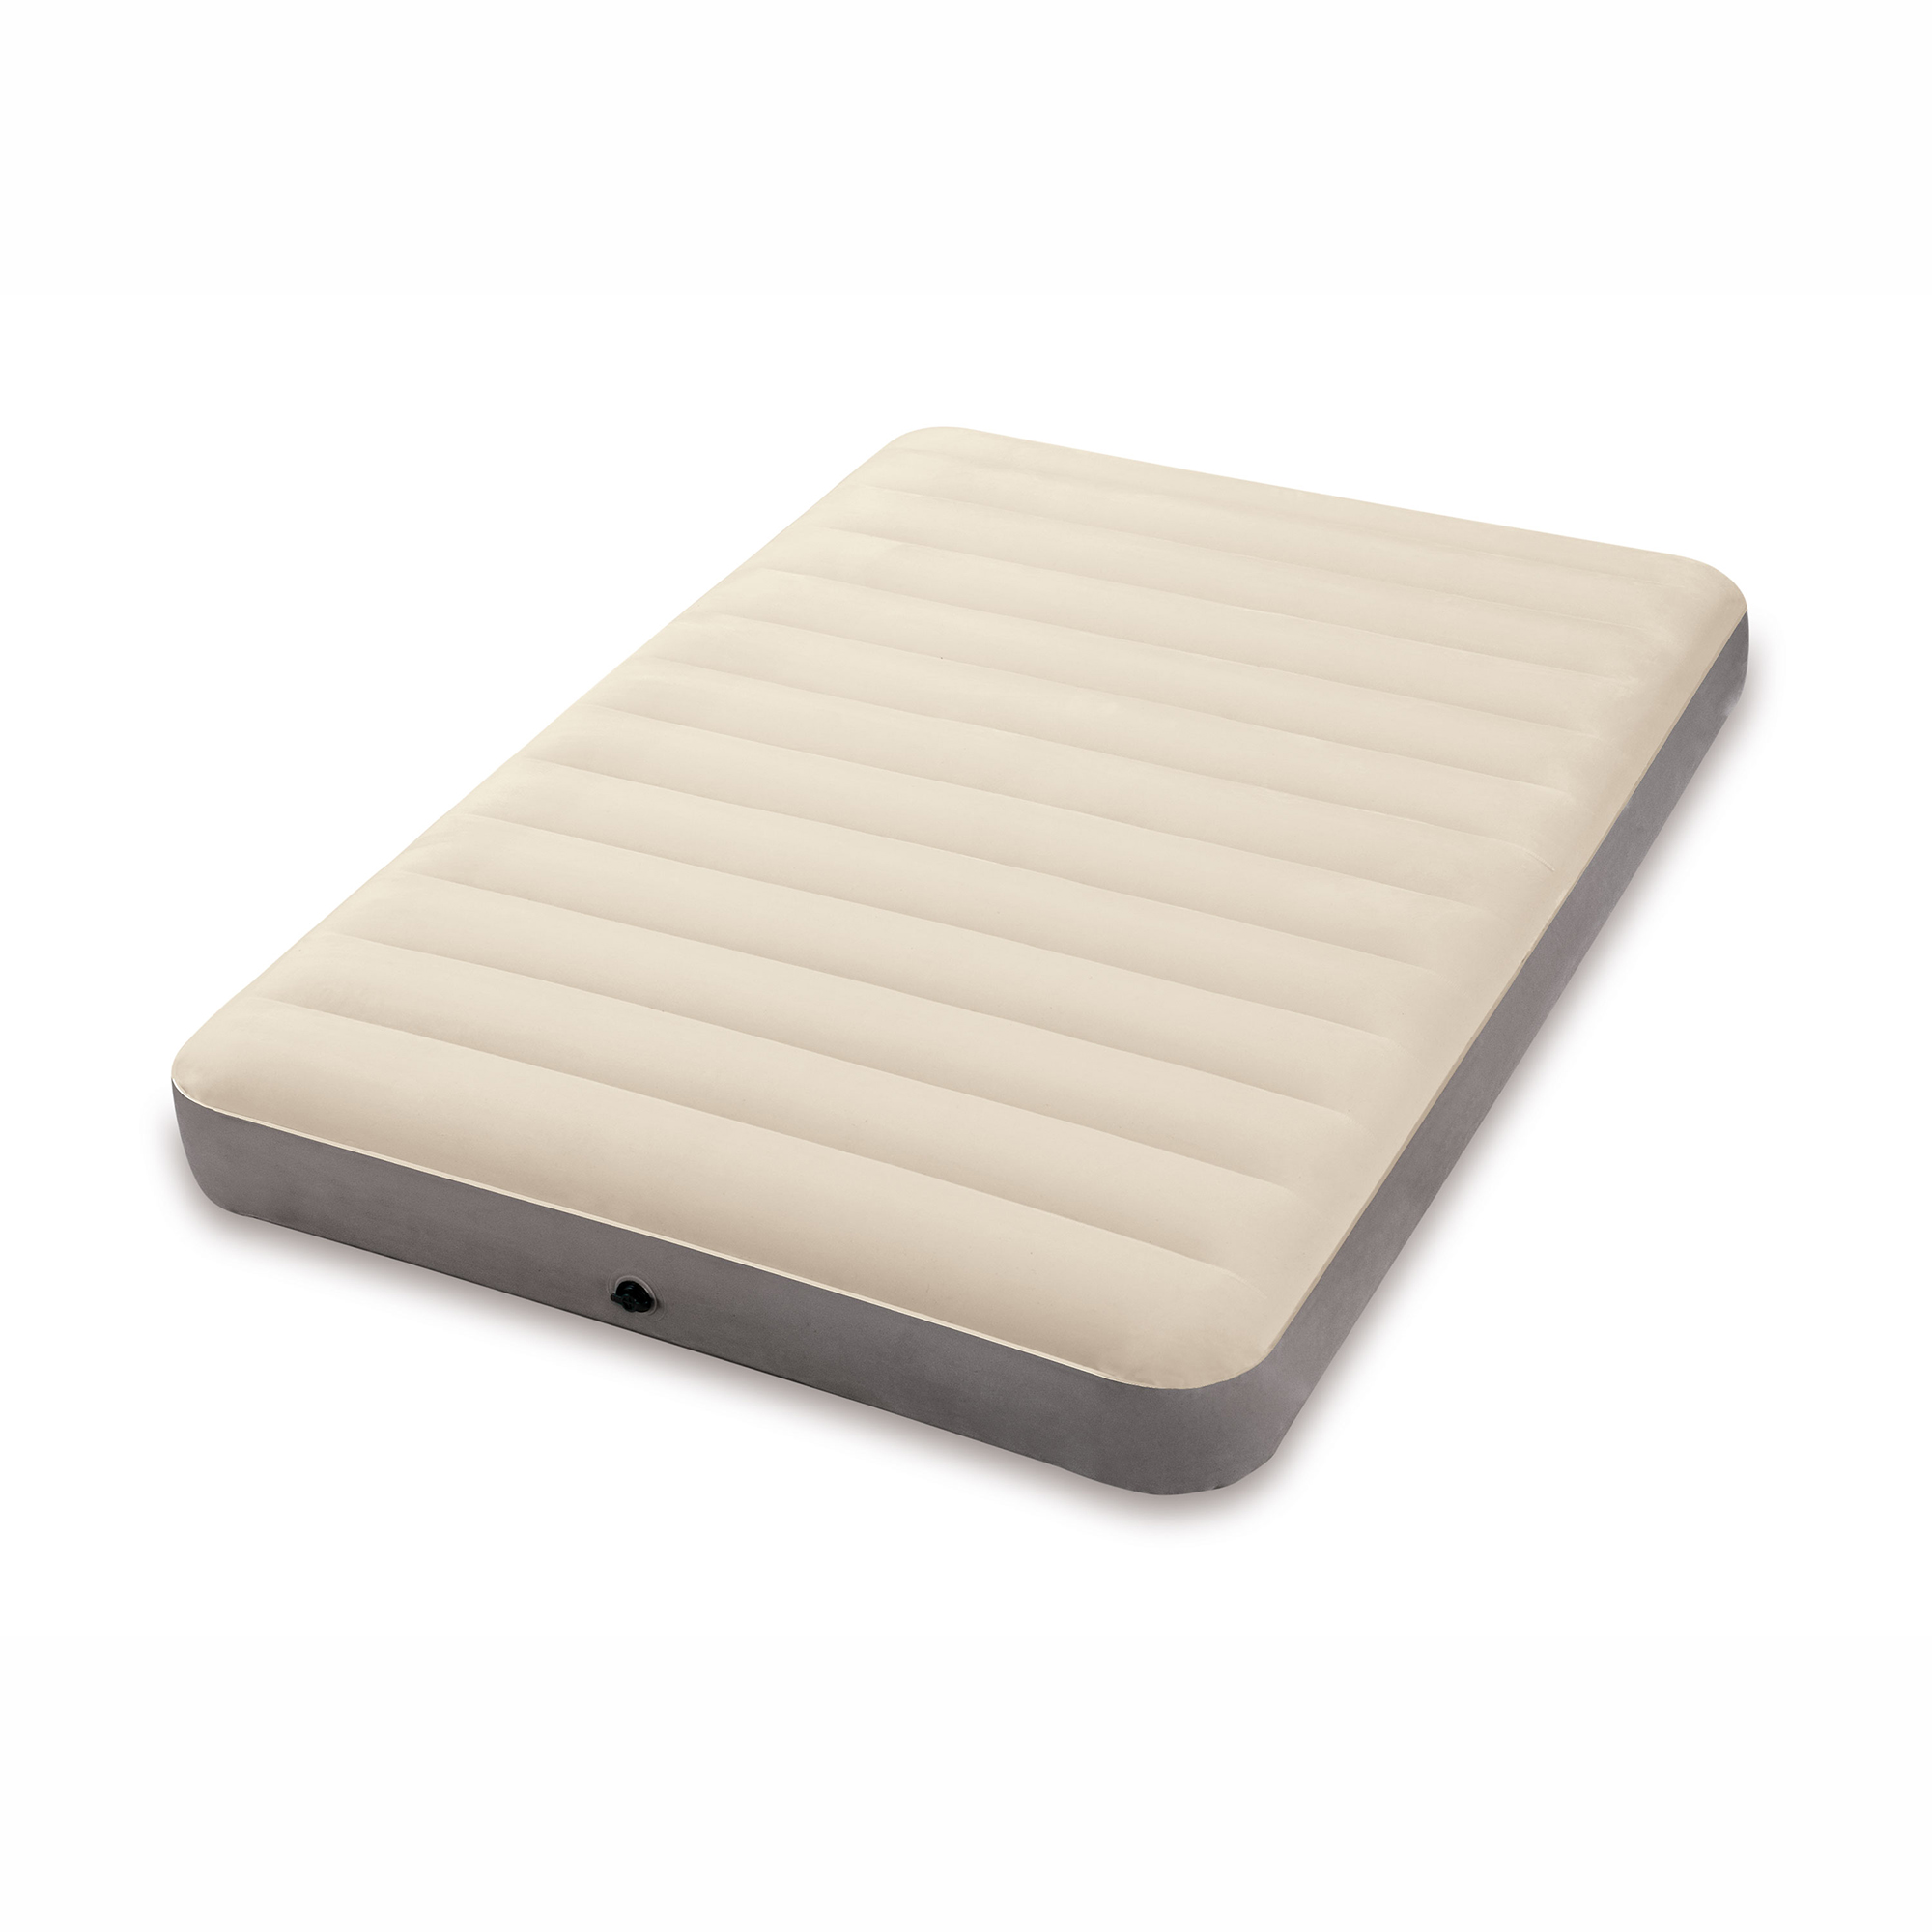 Baby Mattress Kmart Sleeping Air Mattress Kmart Sleeping Air Bed